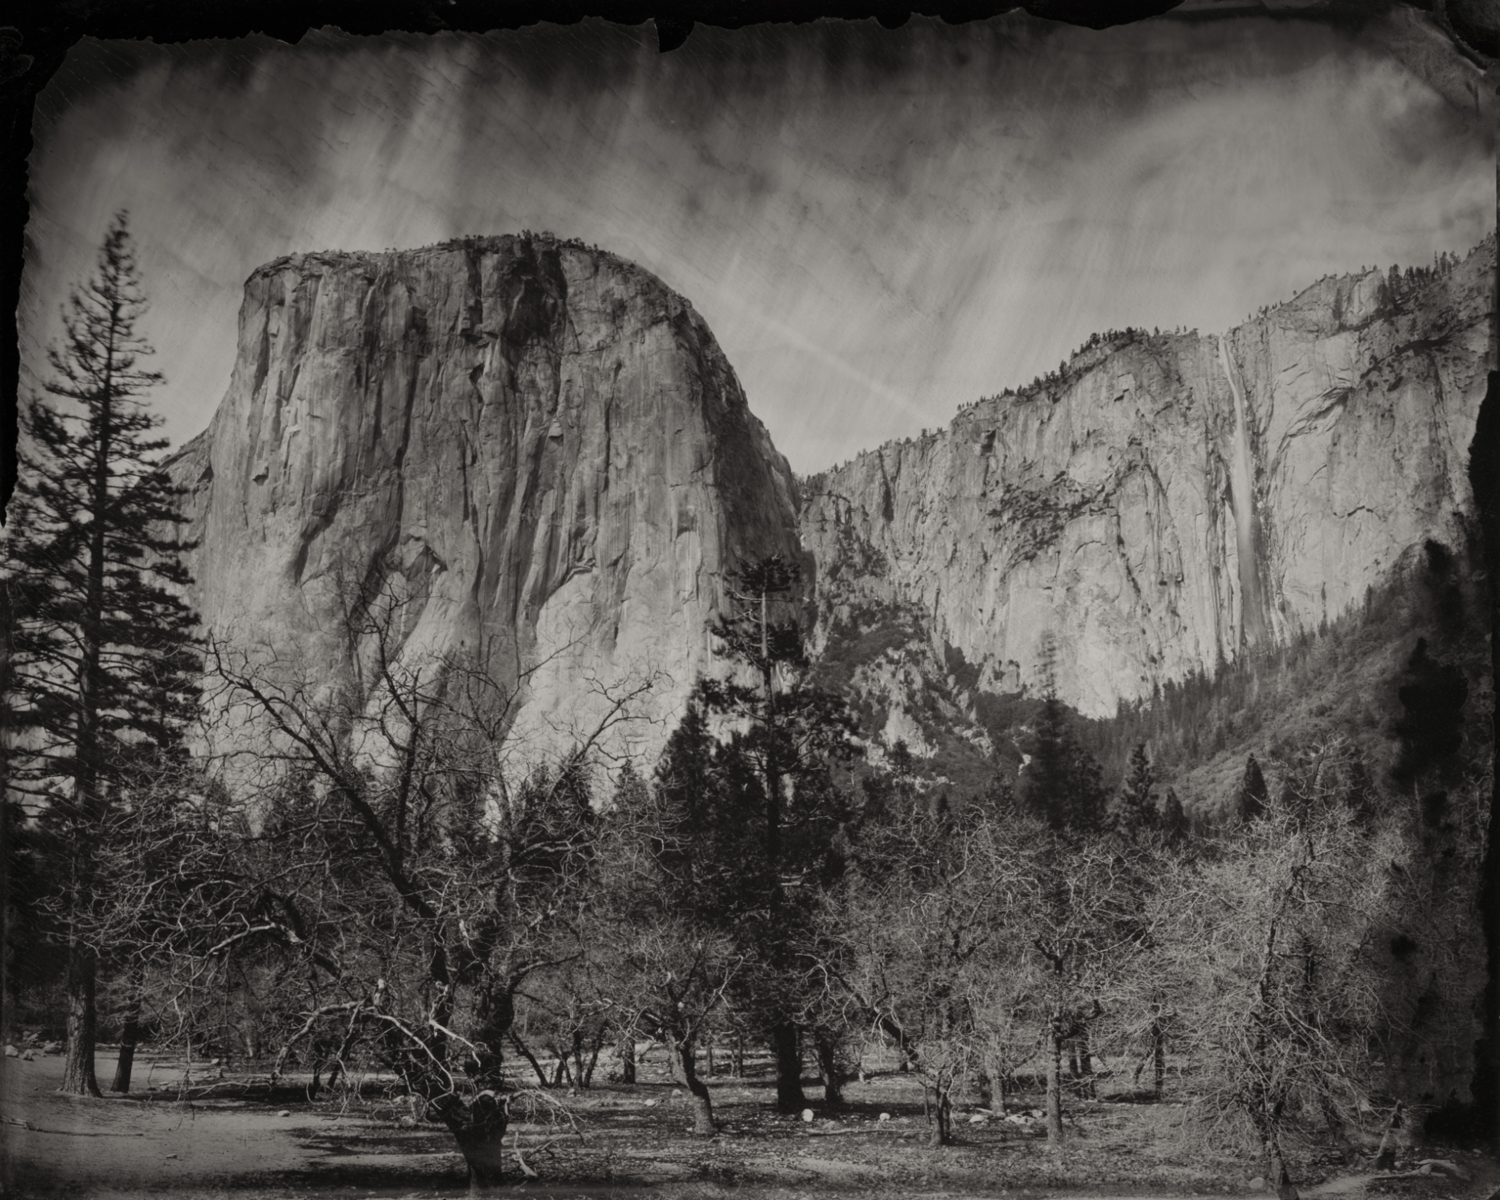 El Capitan and Waterfall , 2016  Pigment print on Baryta paper  30 x 37.5 inches  Edition 2 of 7